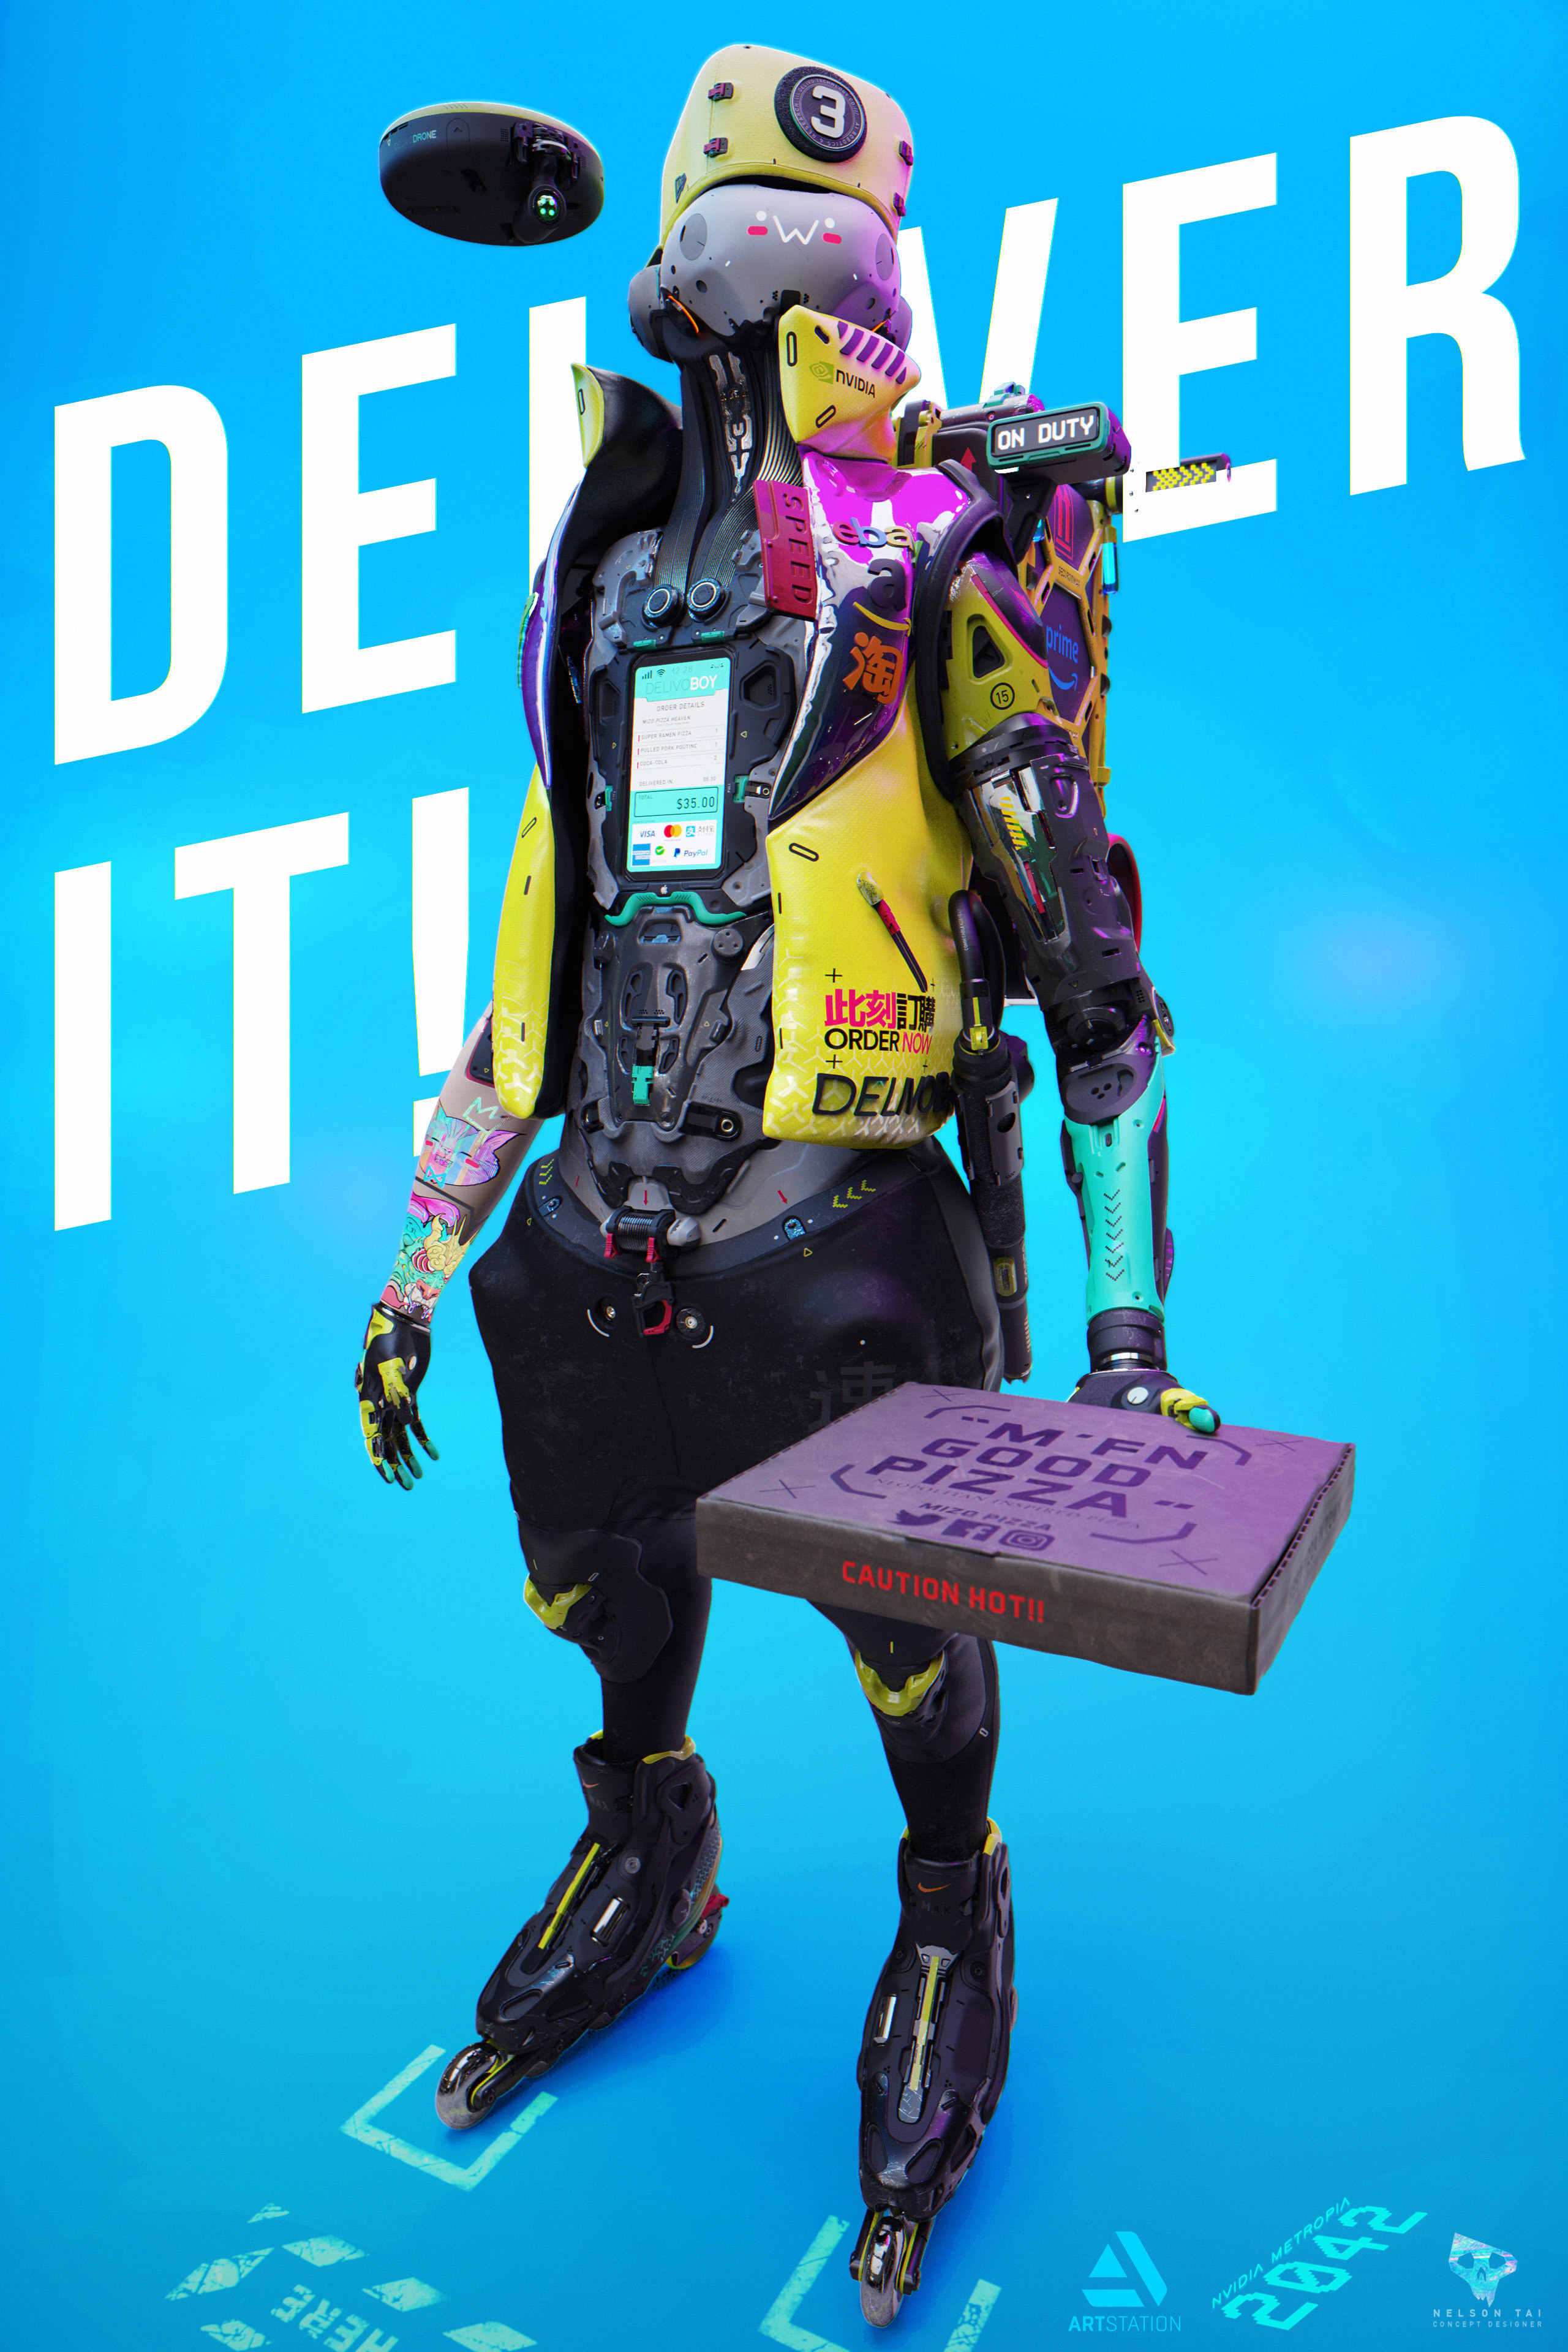 DelivoBoy Poster Ad